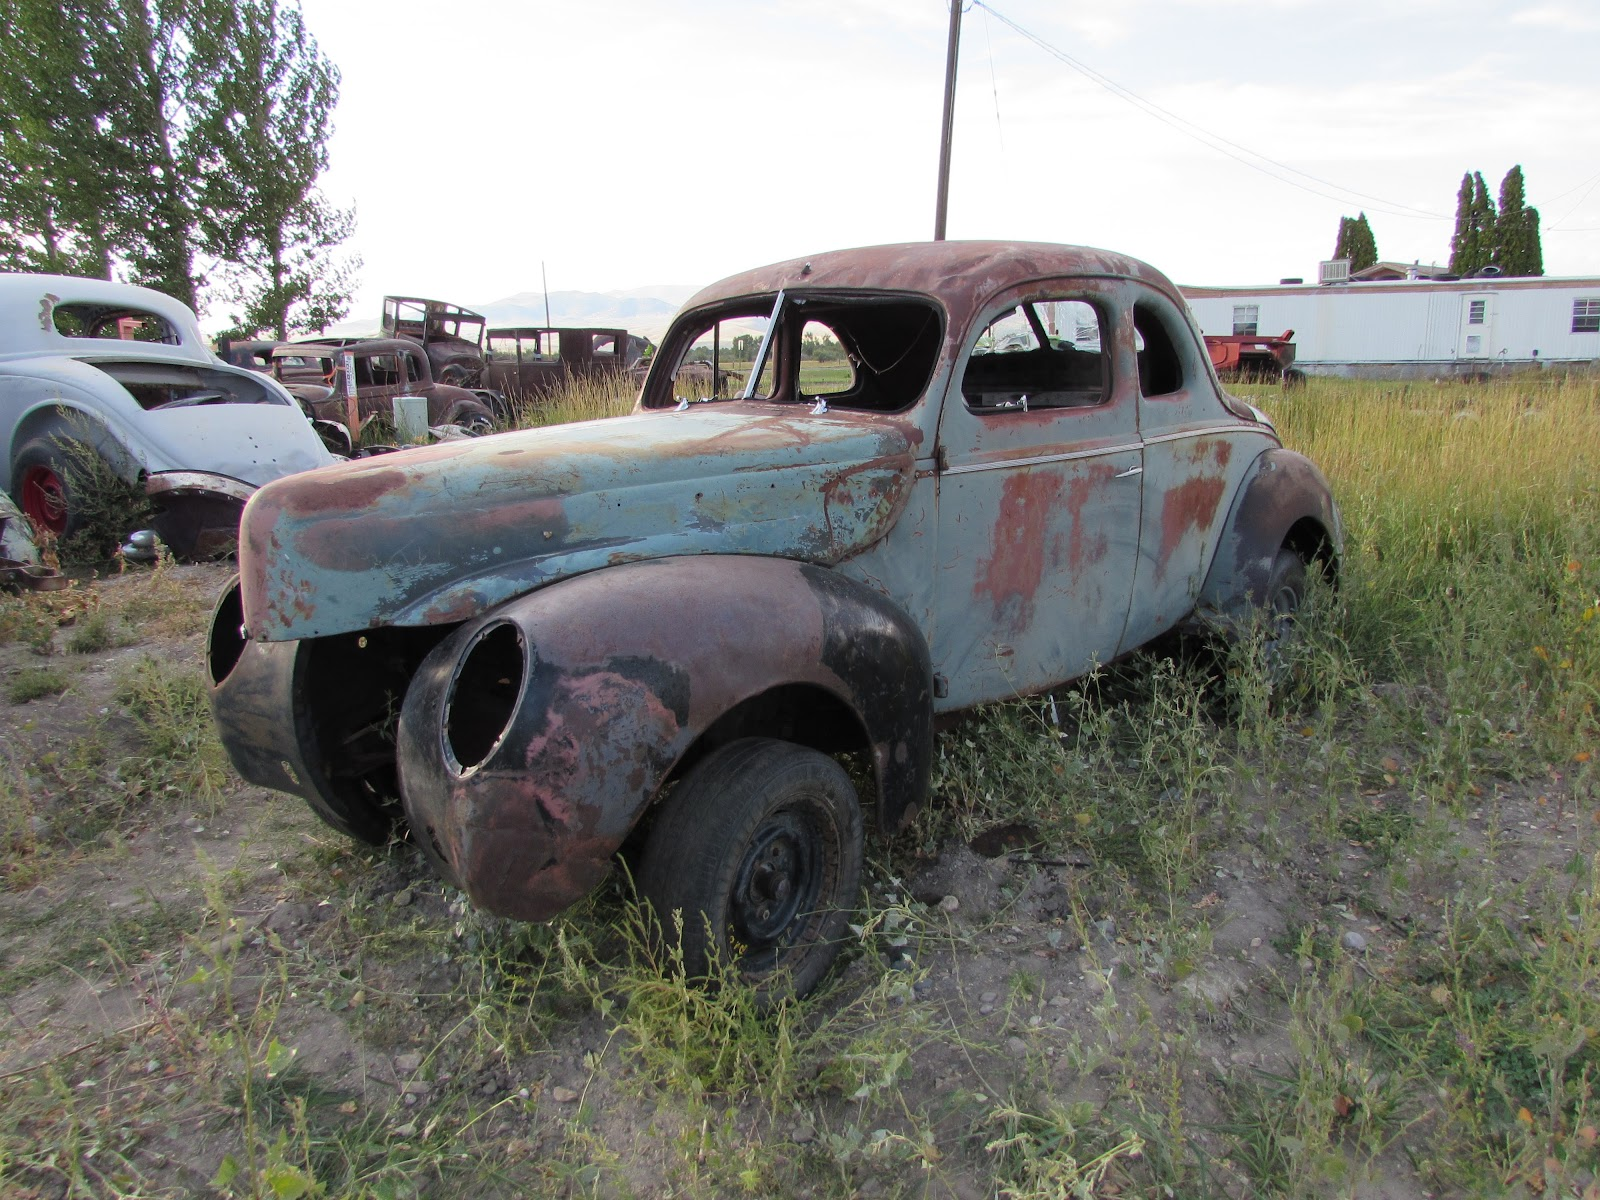 Reel Rods Inc.: FOR SALE: 1940 Ford Deluxe opera coupe project